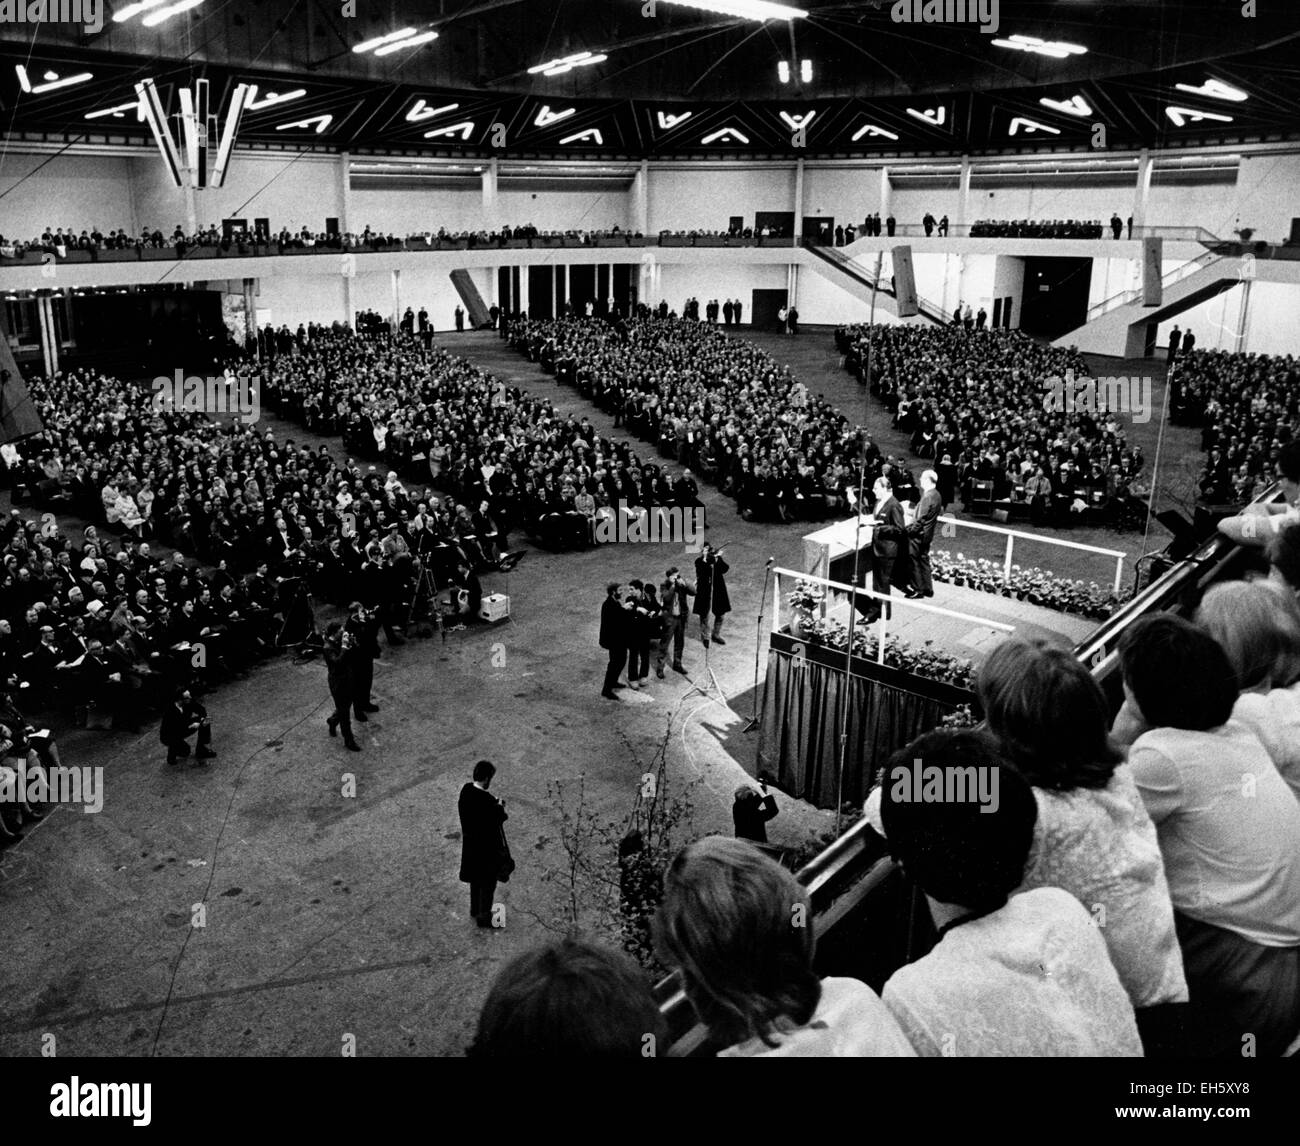 May 10, 1965 - Copenhagen, Denmark - Reverend Billy Graham gives a speech to 8,000 people in Copenhagen before a - Stock Image